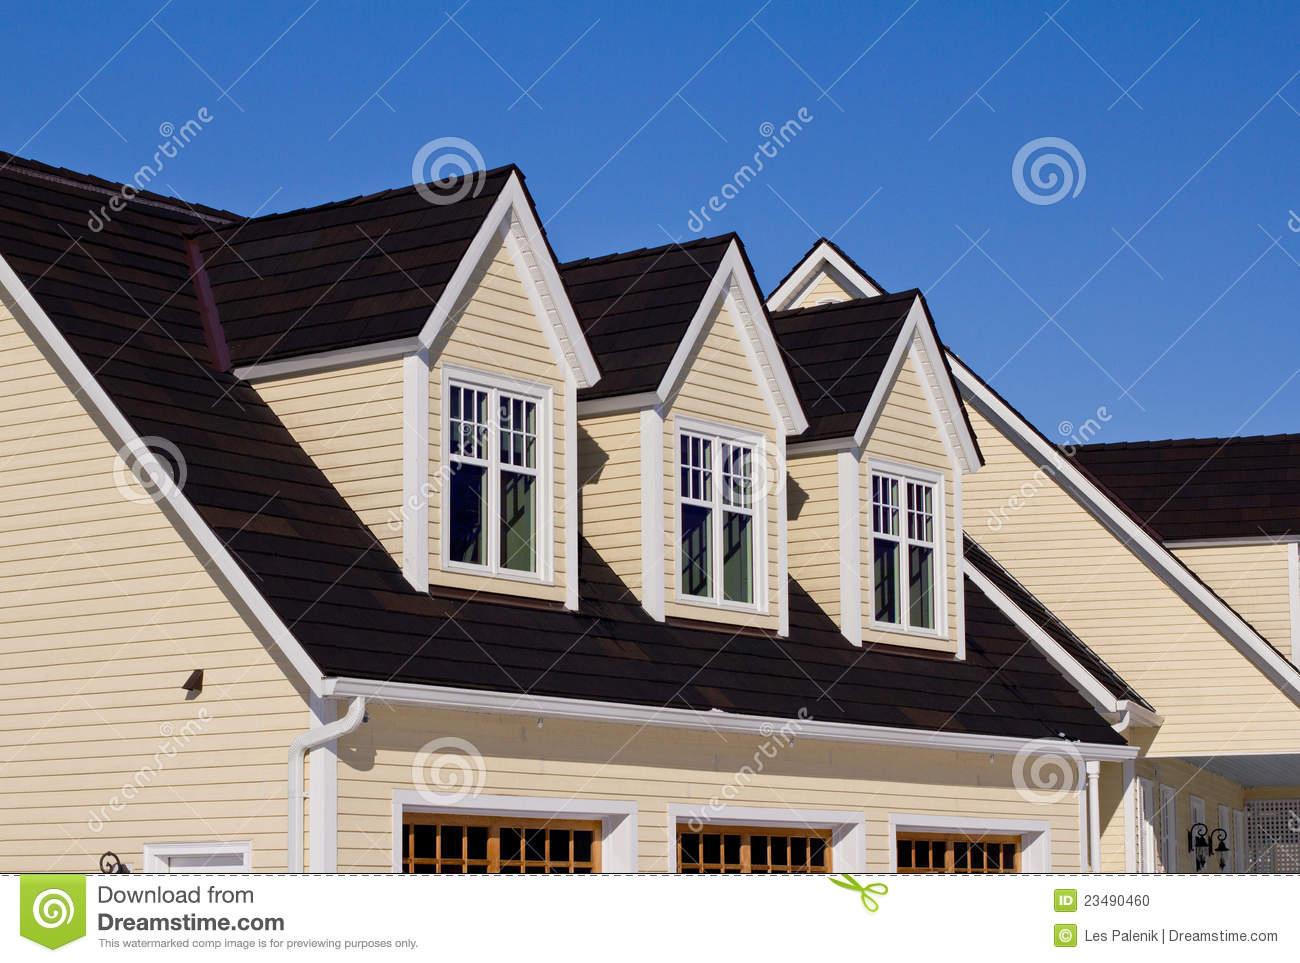 House With Three Dormer Windows Stock Photo Image 23490460